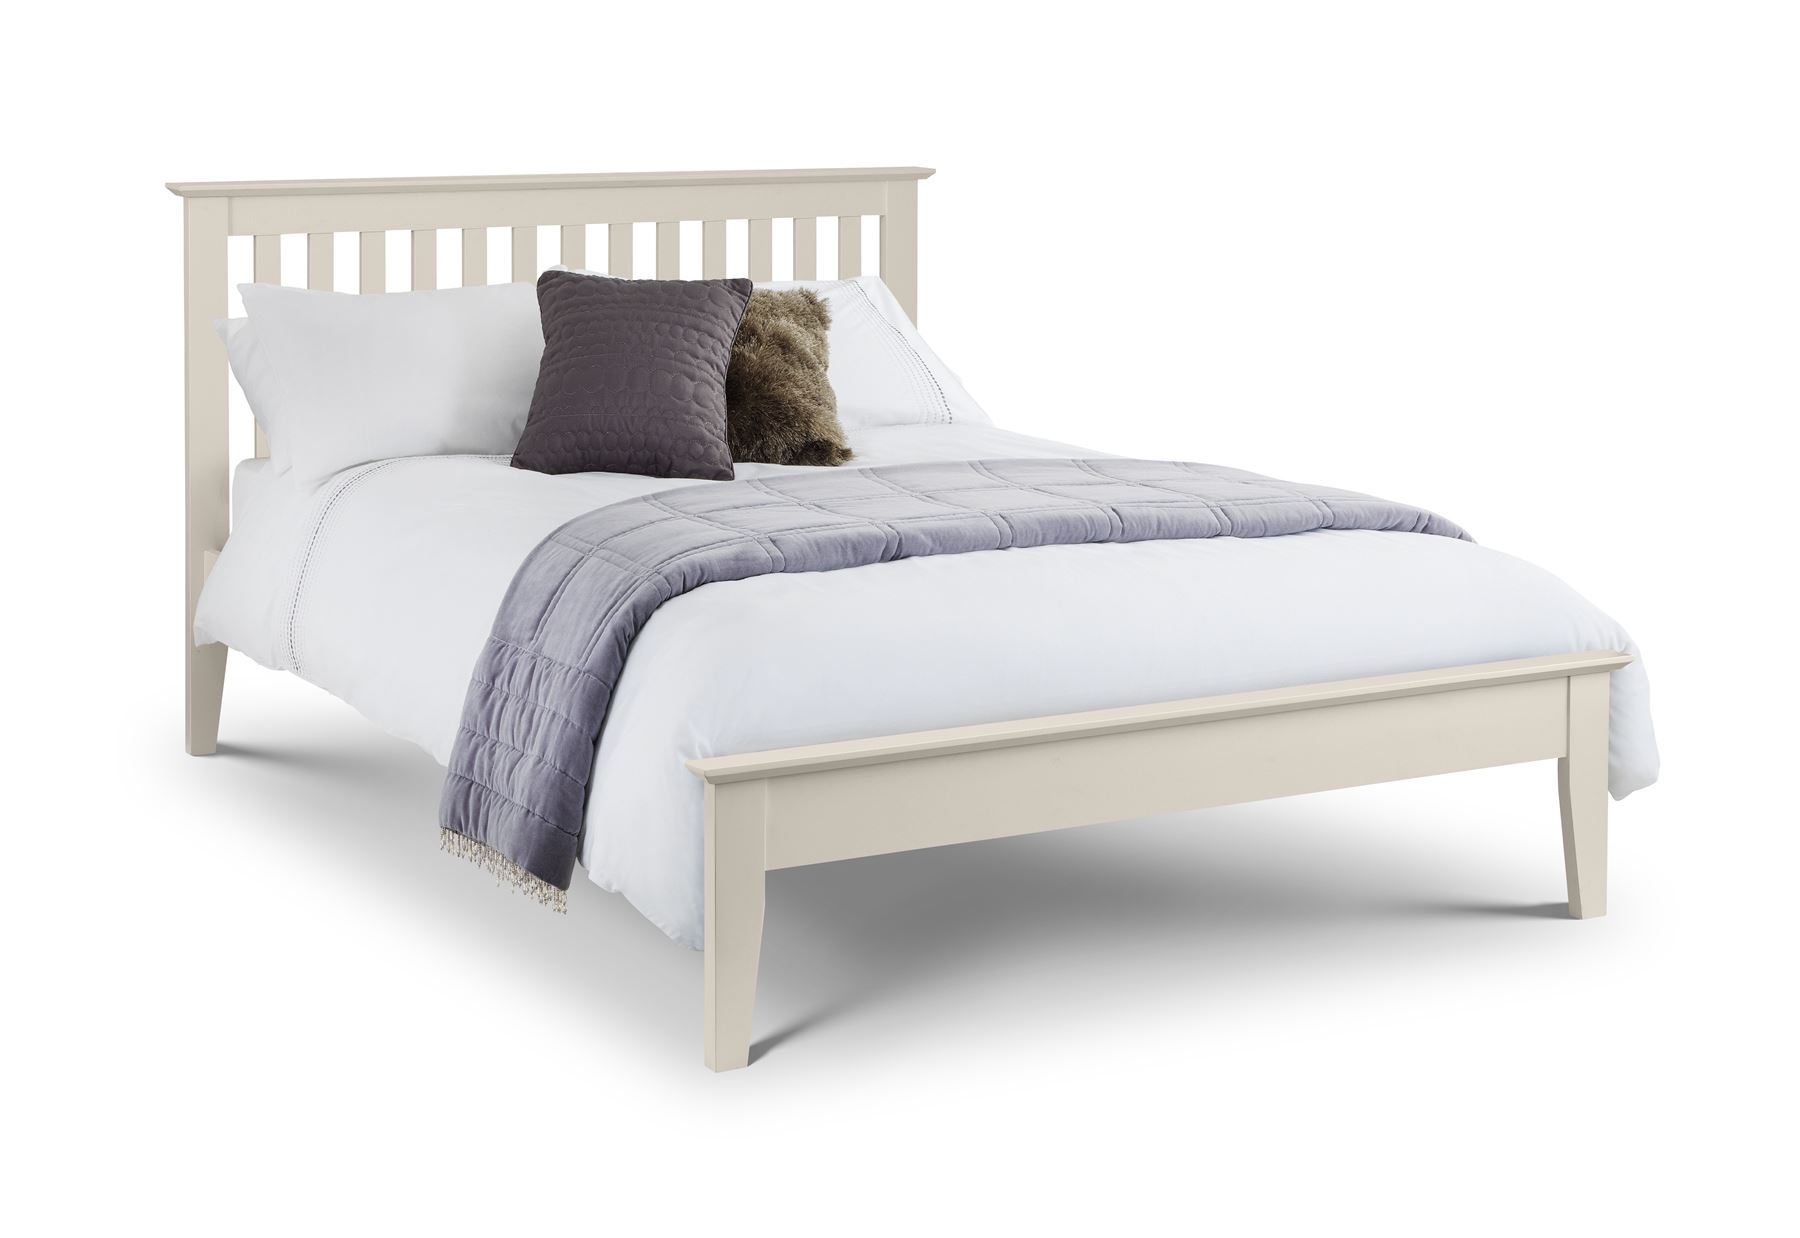 Julian Bowen Salerno Bed Frame Bedstead Stone White 150cm King Size 5FT